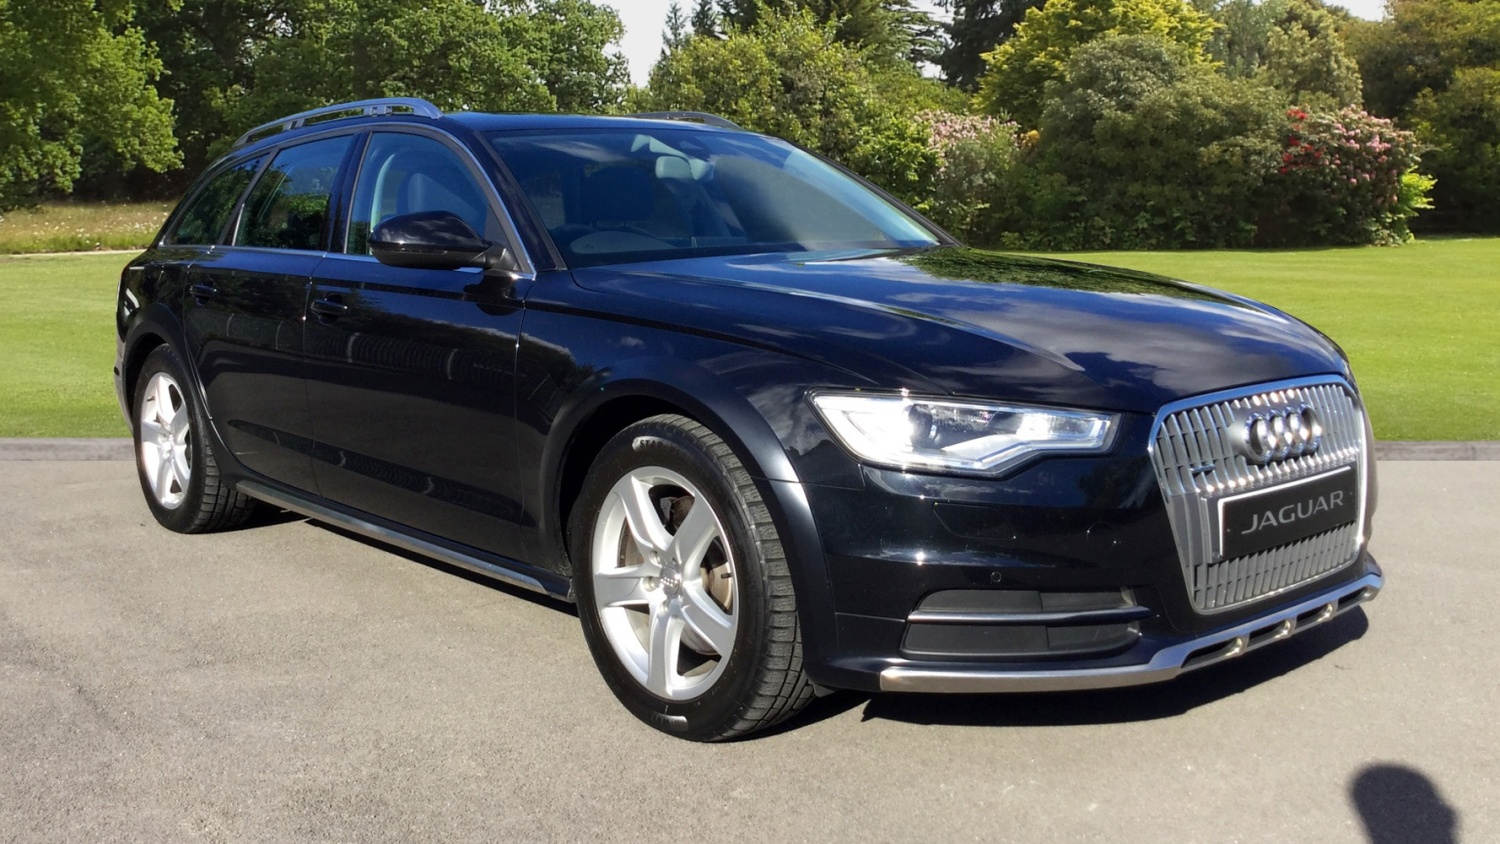 used audi a6 allroad 3 0 tdi quattro 245 5dr s tronic diesel estate for sale farnell jaguar. Black Bedroom Furniture Sets. Home Design Ideas